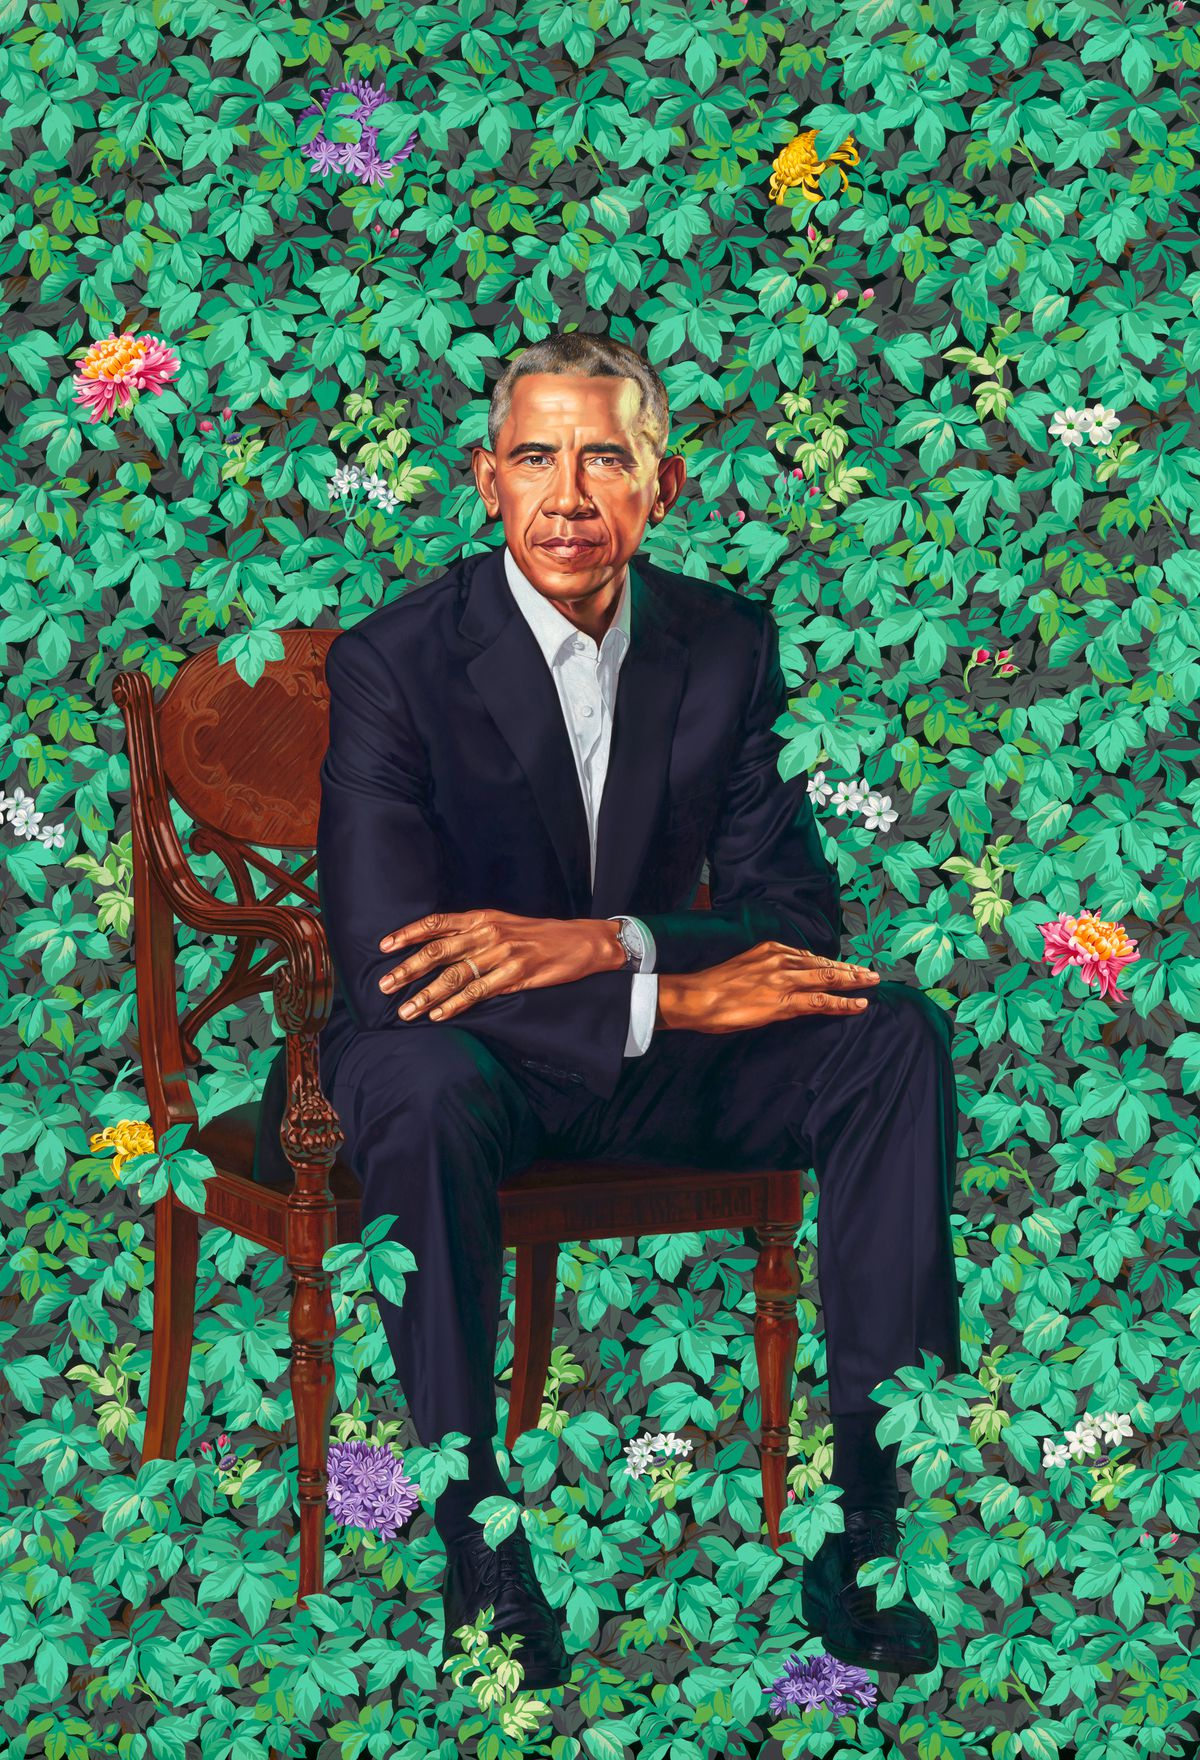 Kehinde Wiley.Barack Obama, 2018. Oil on canvas. National Portrait Gallery, Smithsonian Institution.